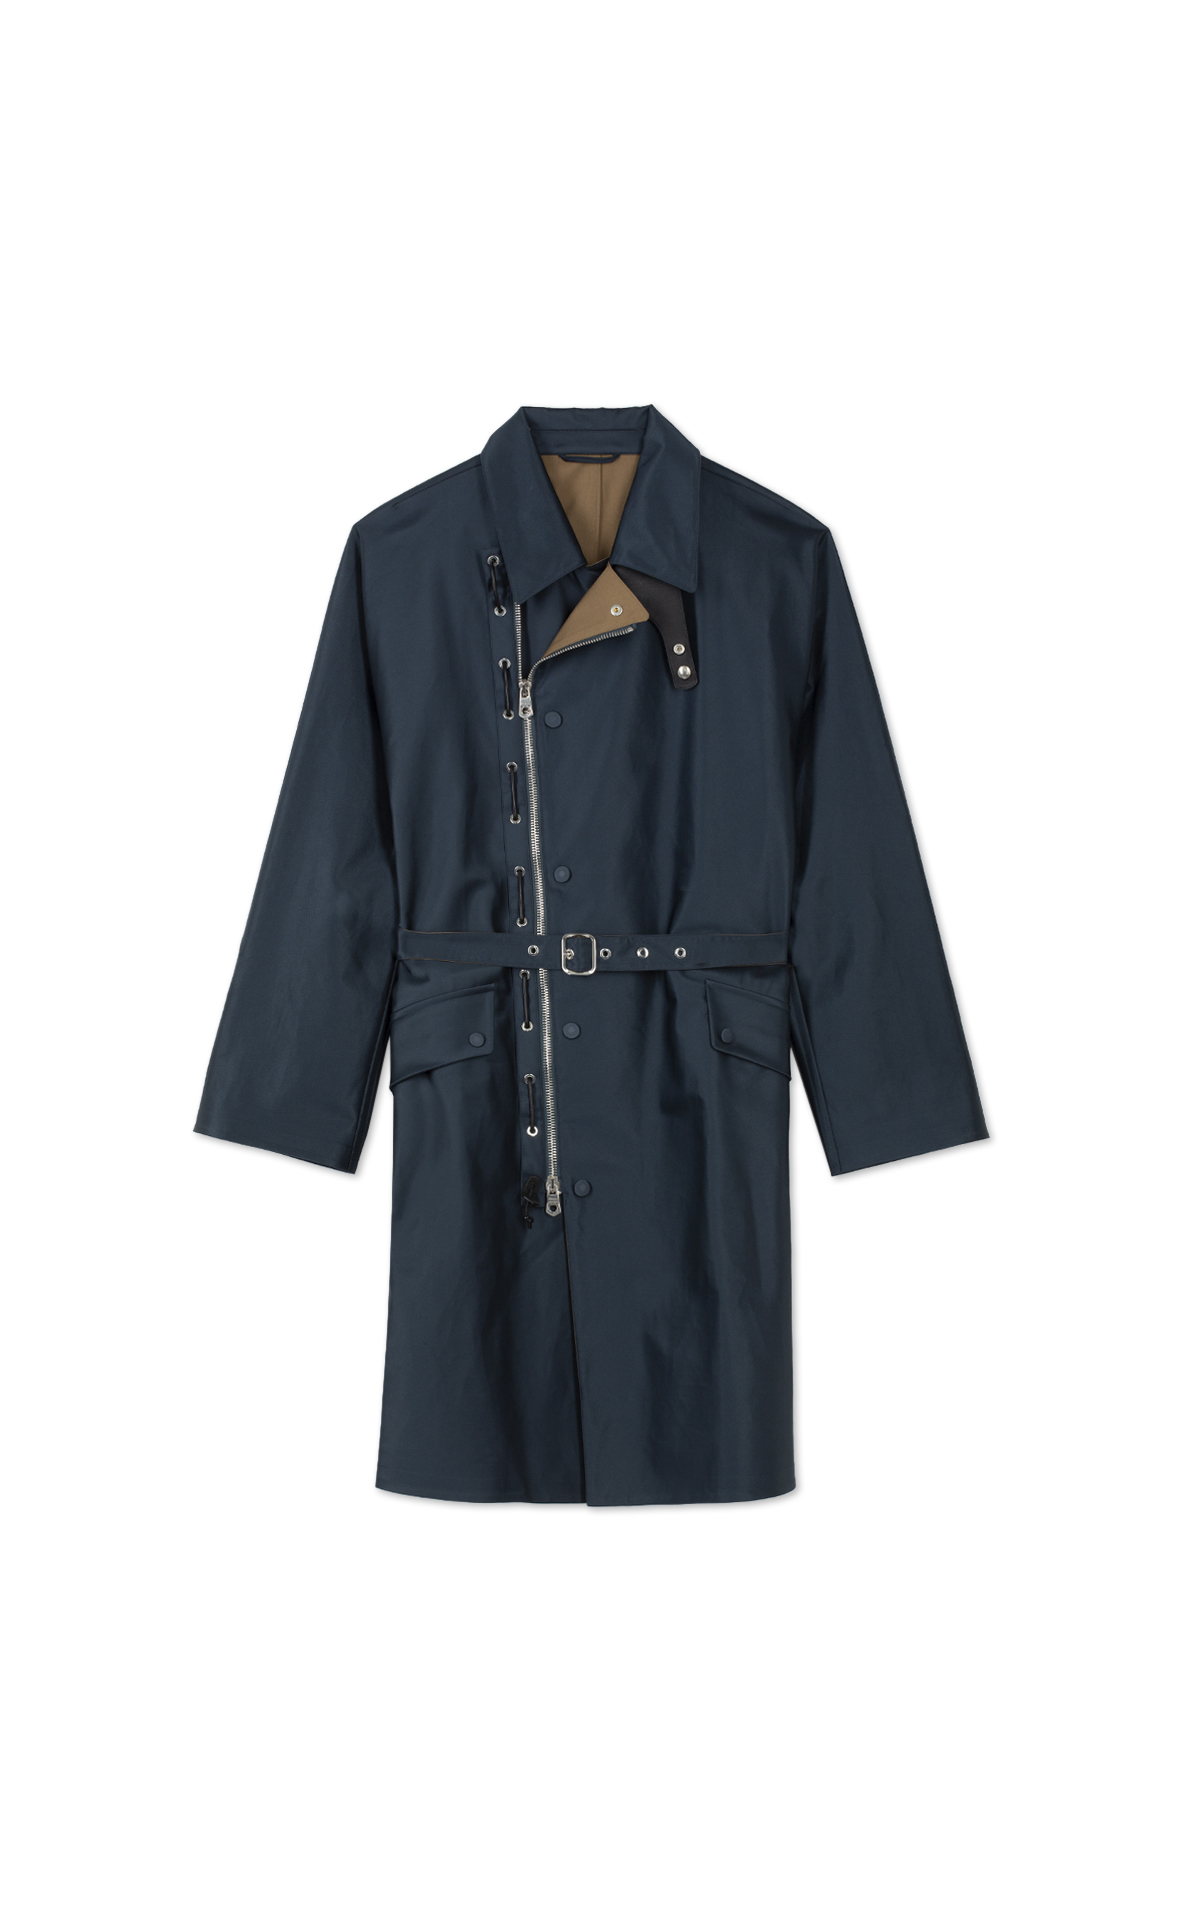 Salvatore Ferragamo Men's coat